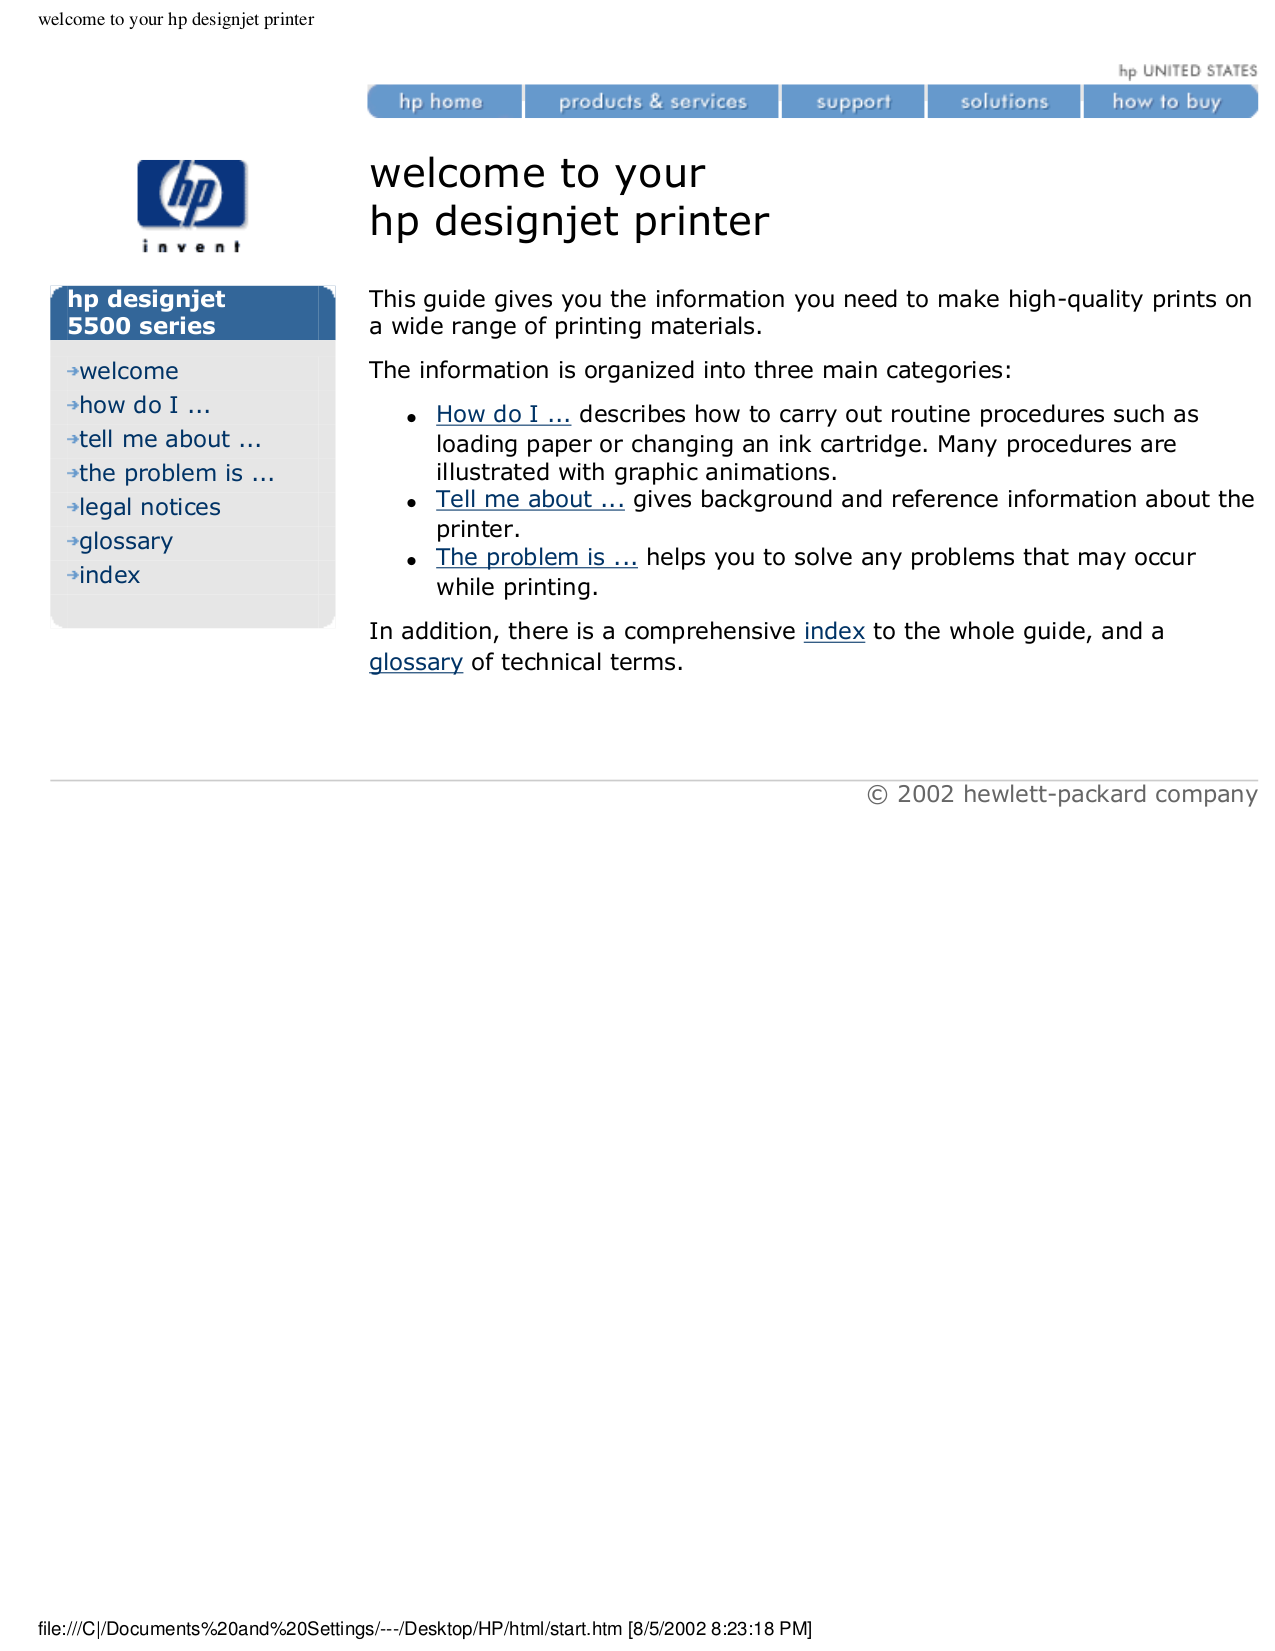 Hp spare parts numbers for hp designjet 5000 and 5500 printers.